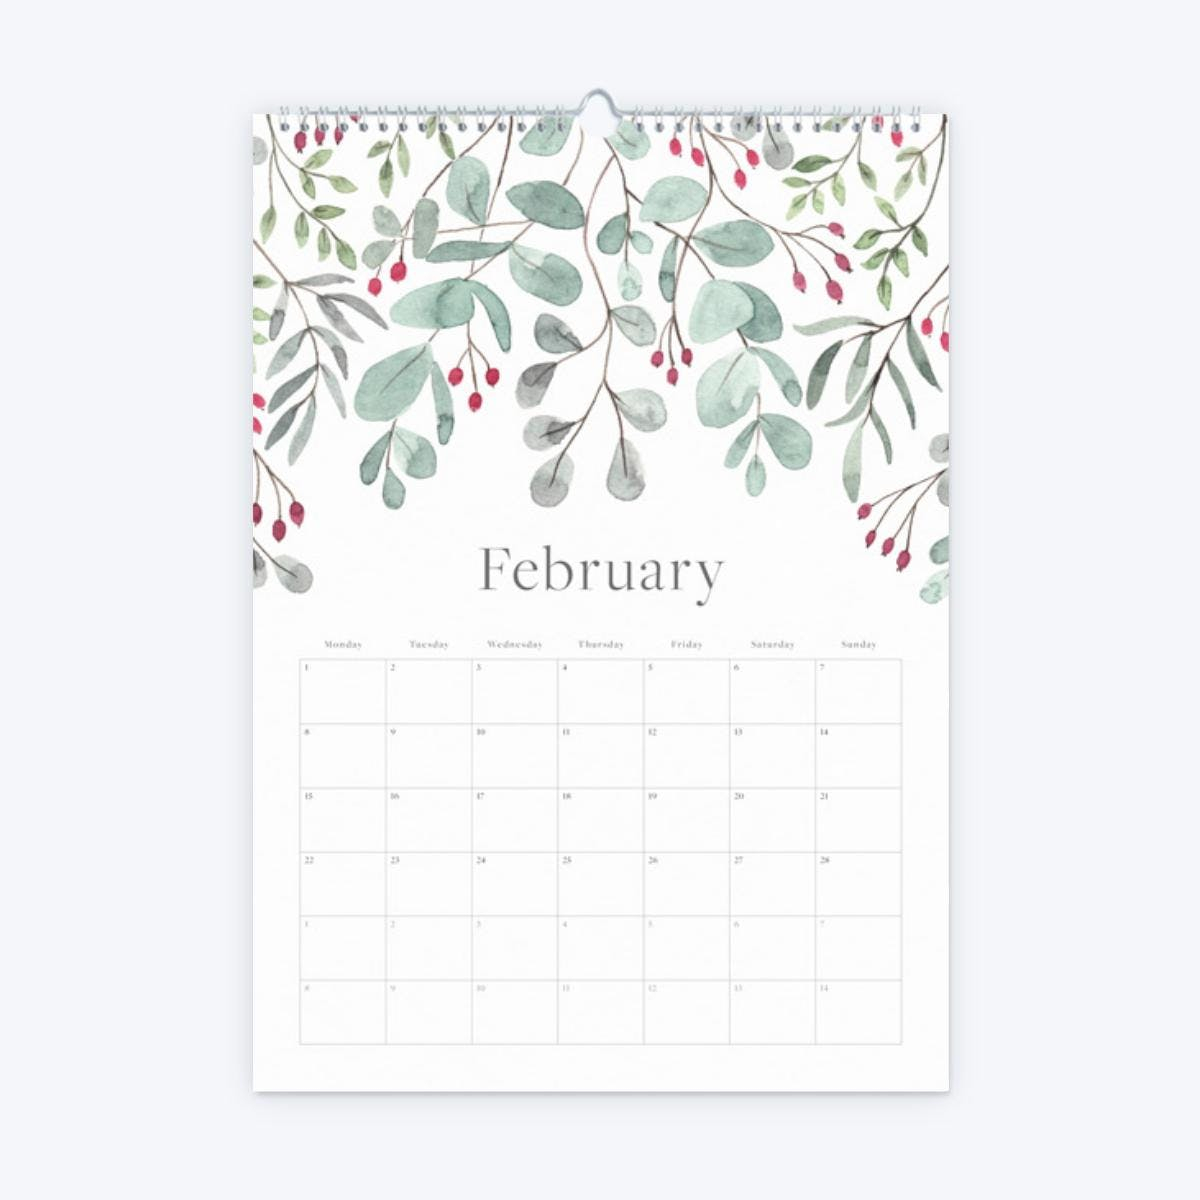 s product image 76 2021 floral calendar february